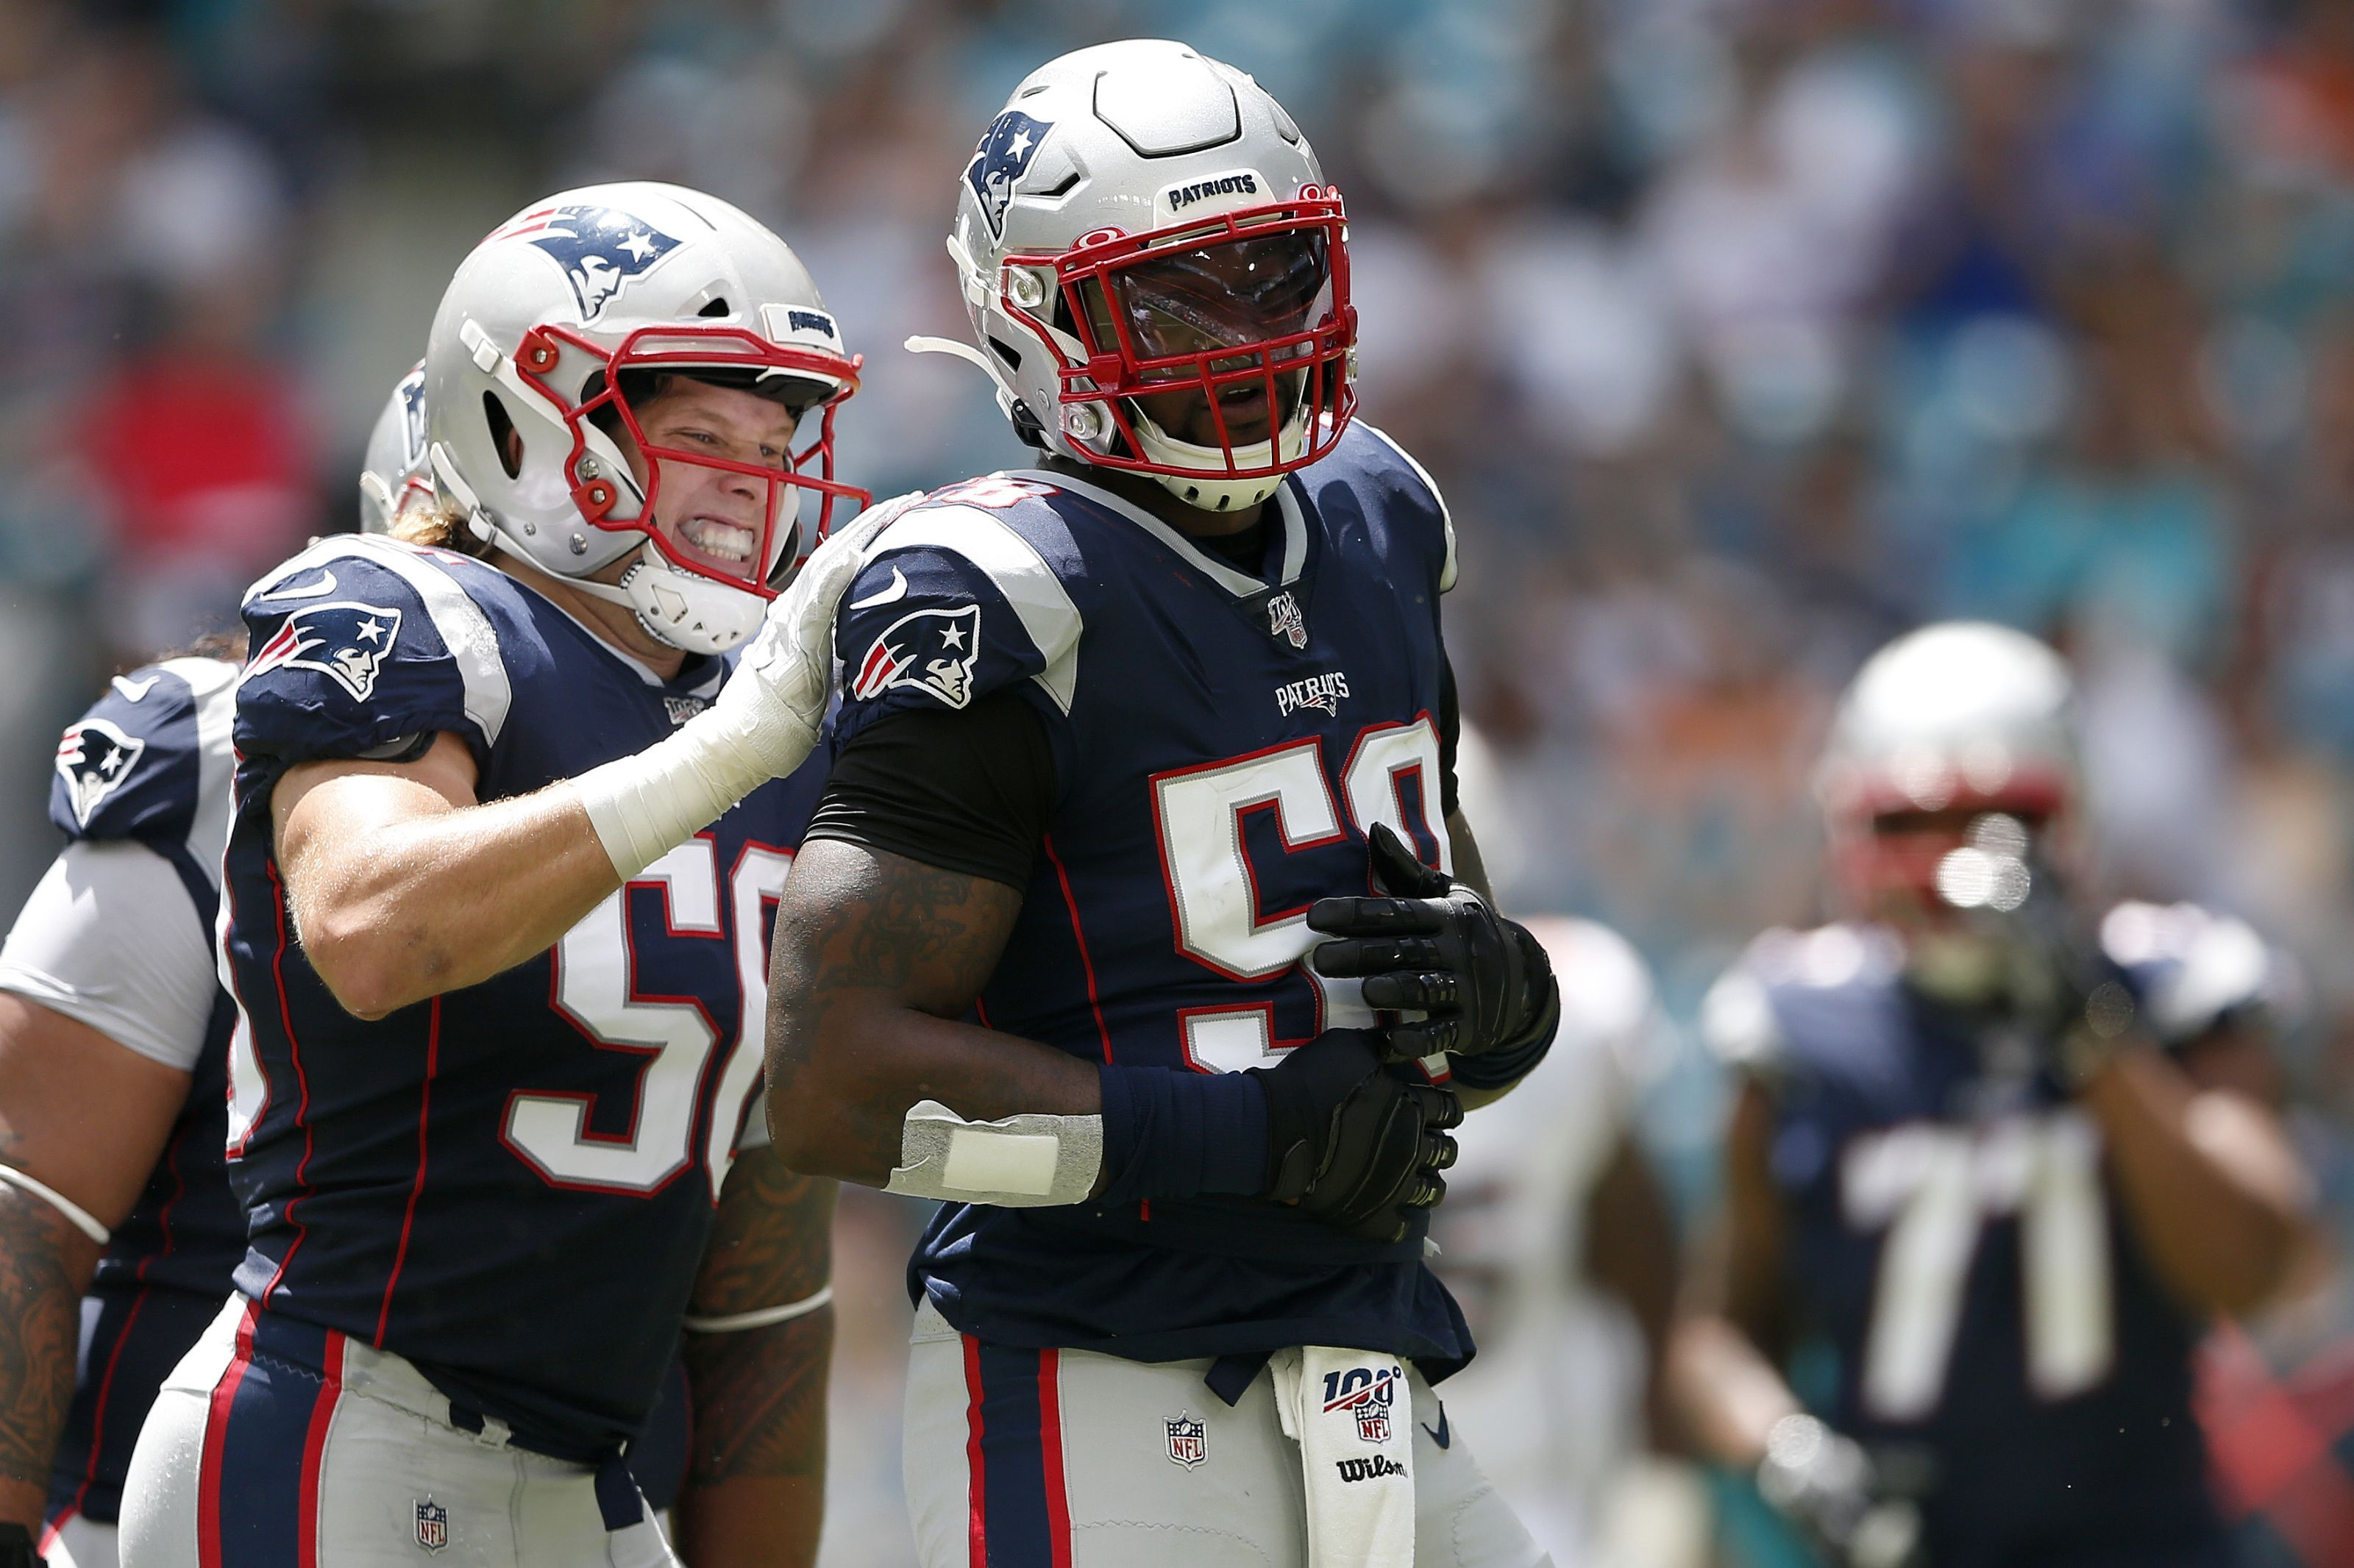 New England Patriots Vs Miami Dolphins What Are The Injuries National Football League News The New E Patriots Defense Patriots New England Patriots Defense